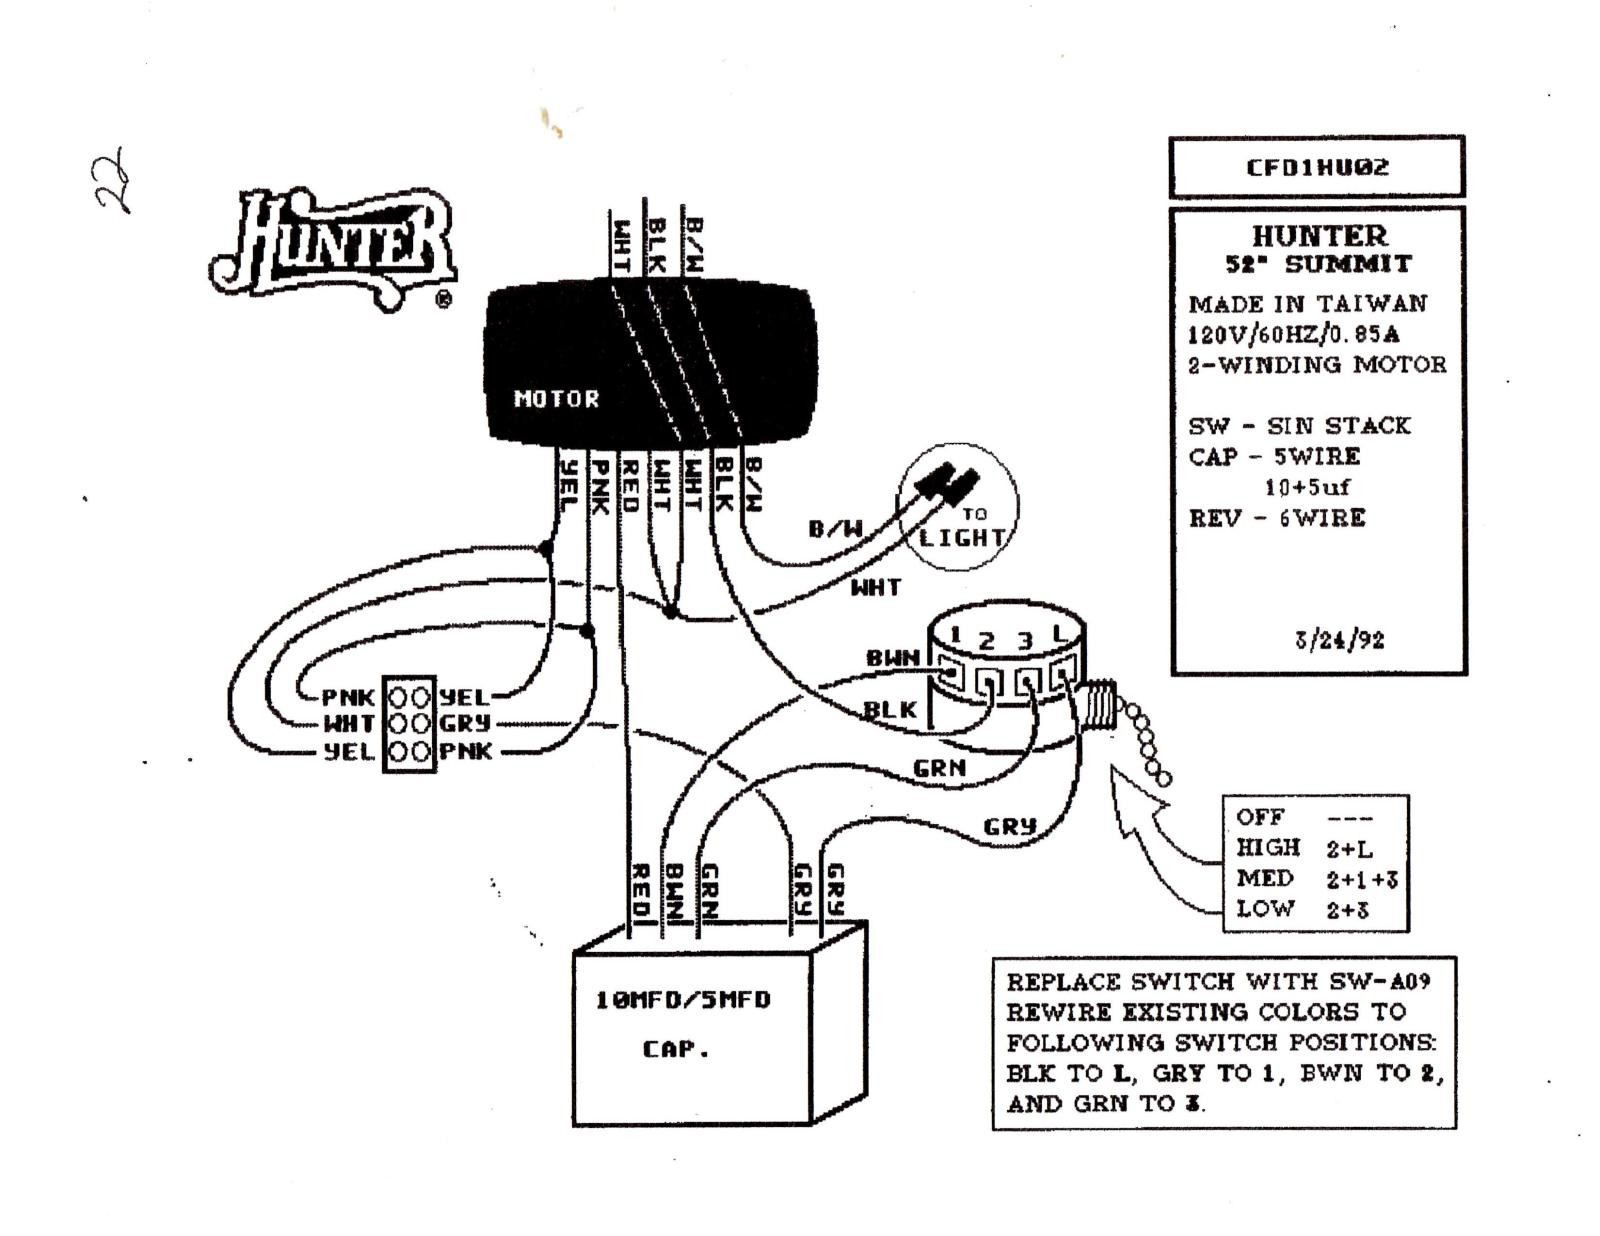 3 Speed 4 Wire Fan Switch Wiring Diagram Sample